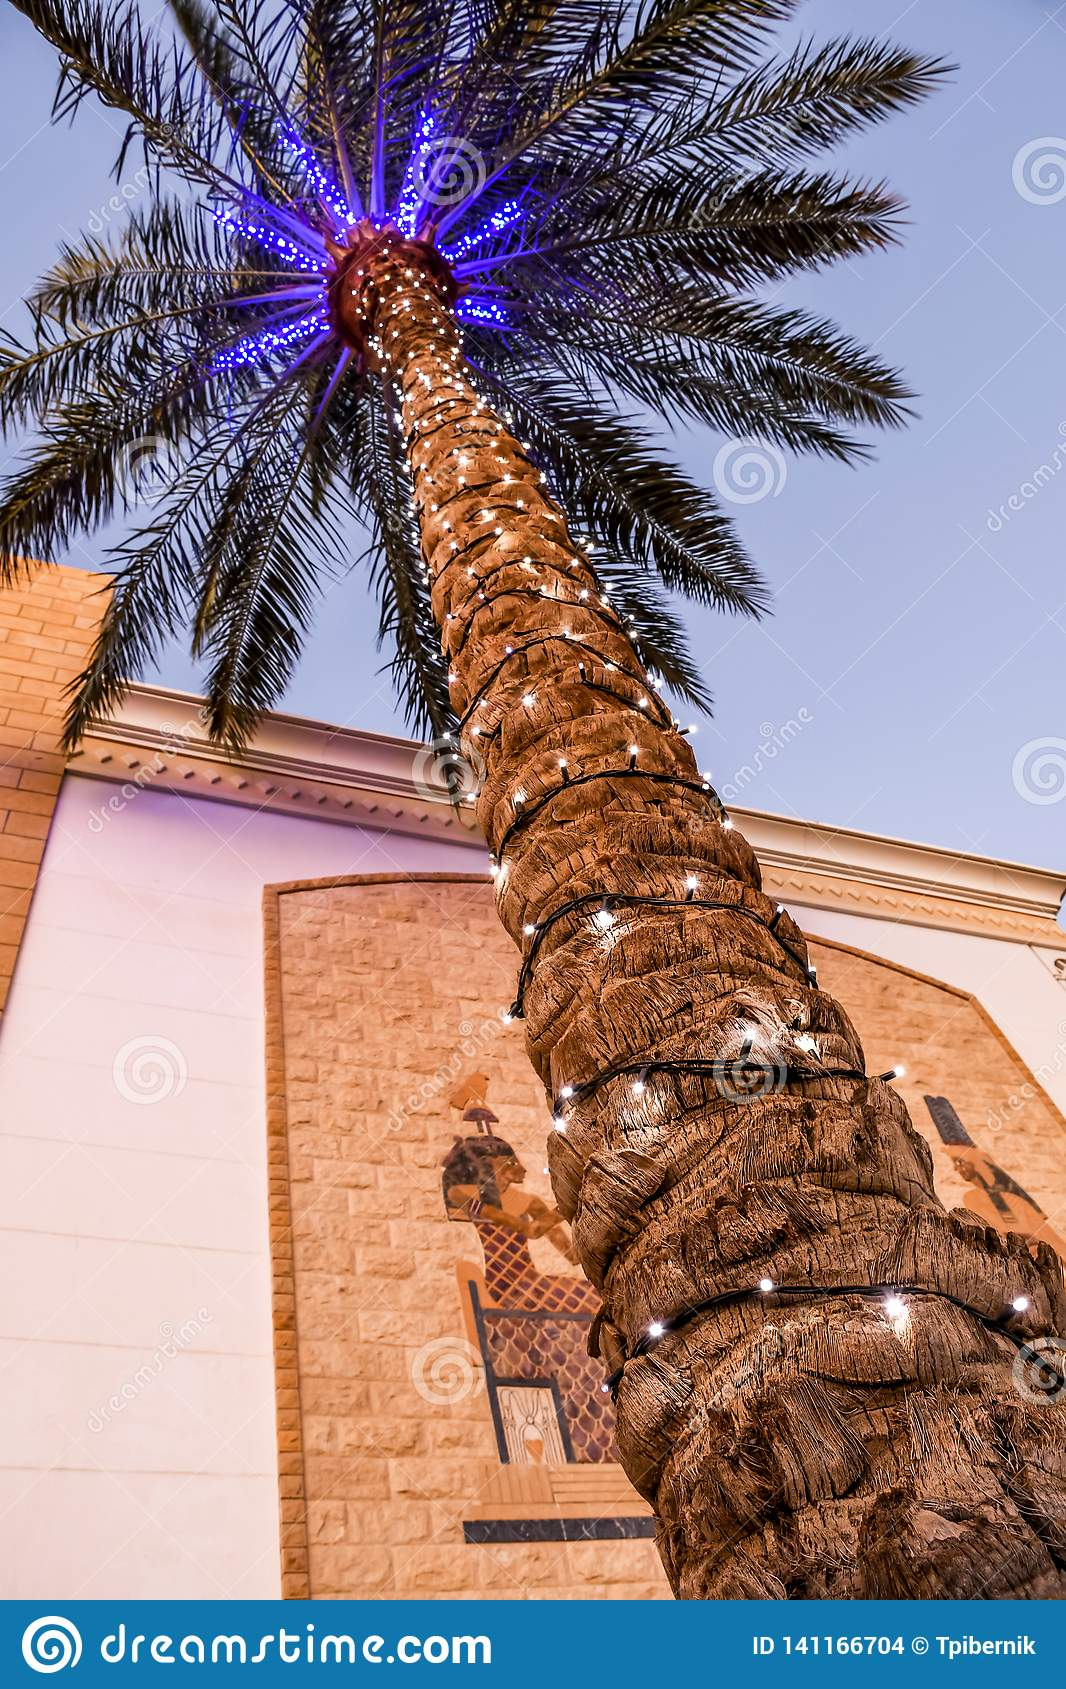 Christmas decorated palm tree with lights and Egypt theme mosaic painting